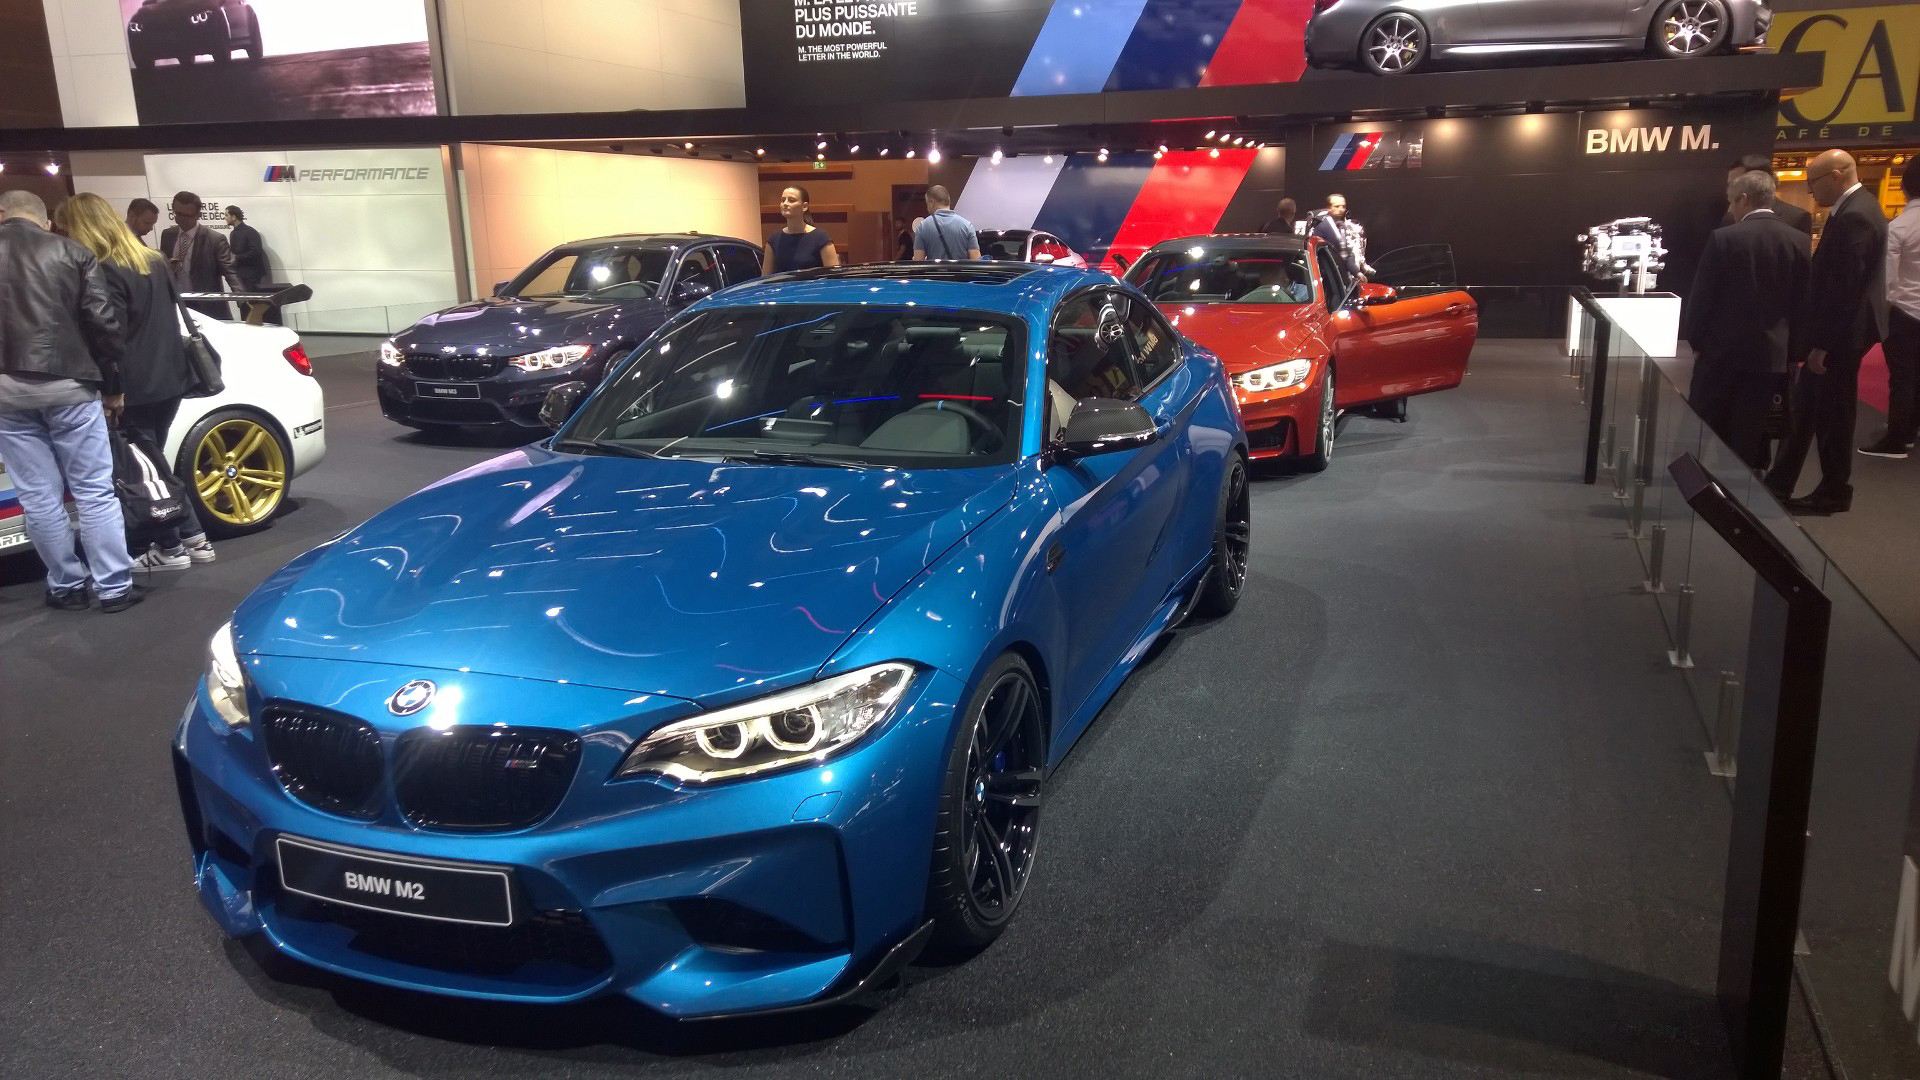 BMW M2 - 2016 - Mondial Auto - photo ELJ DM